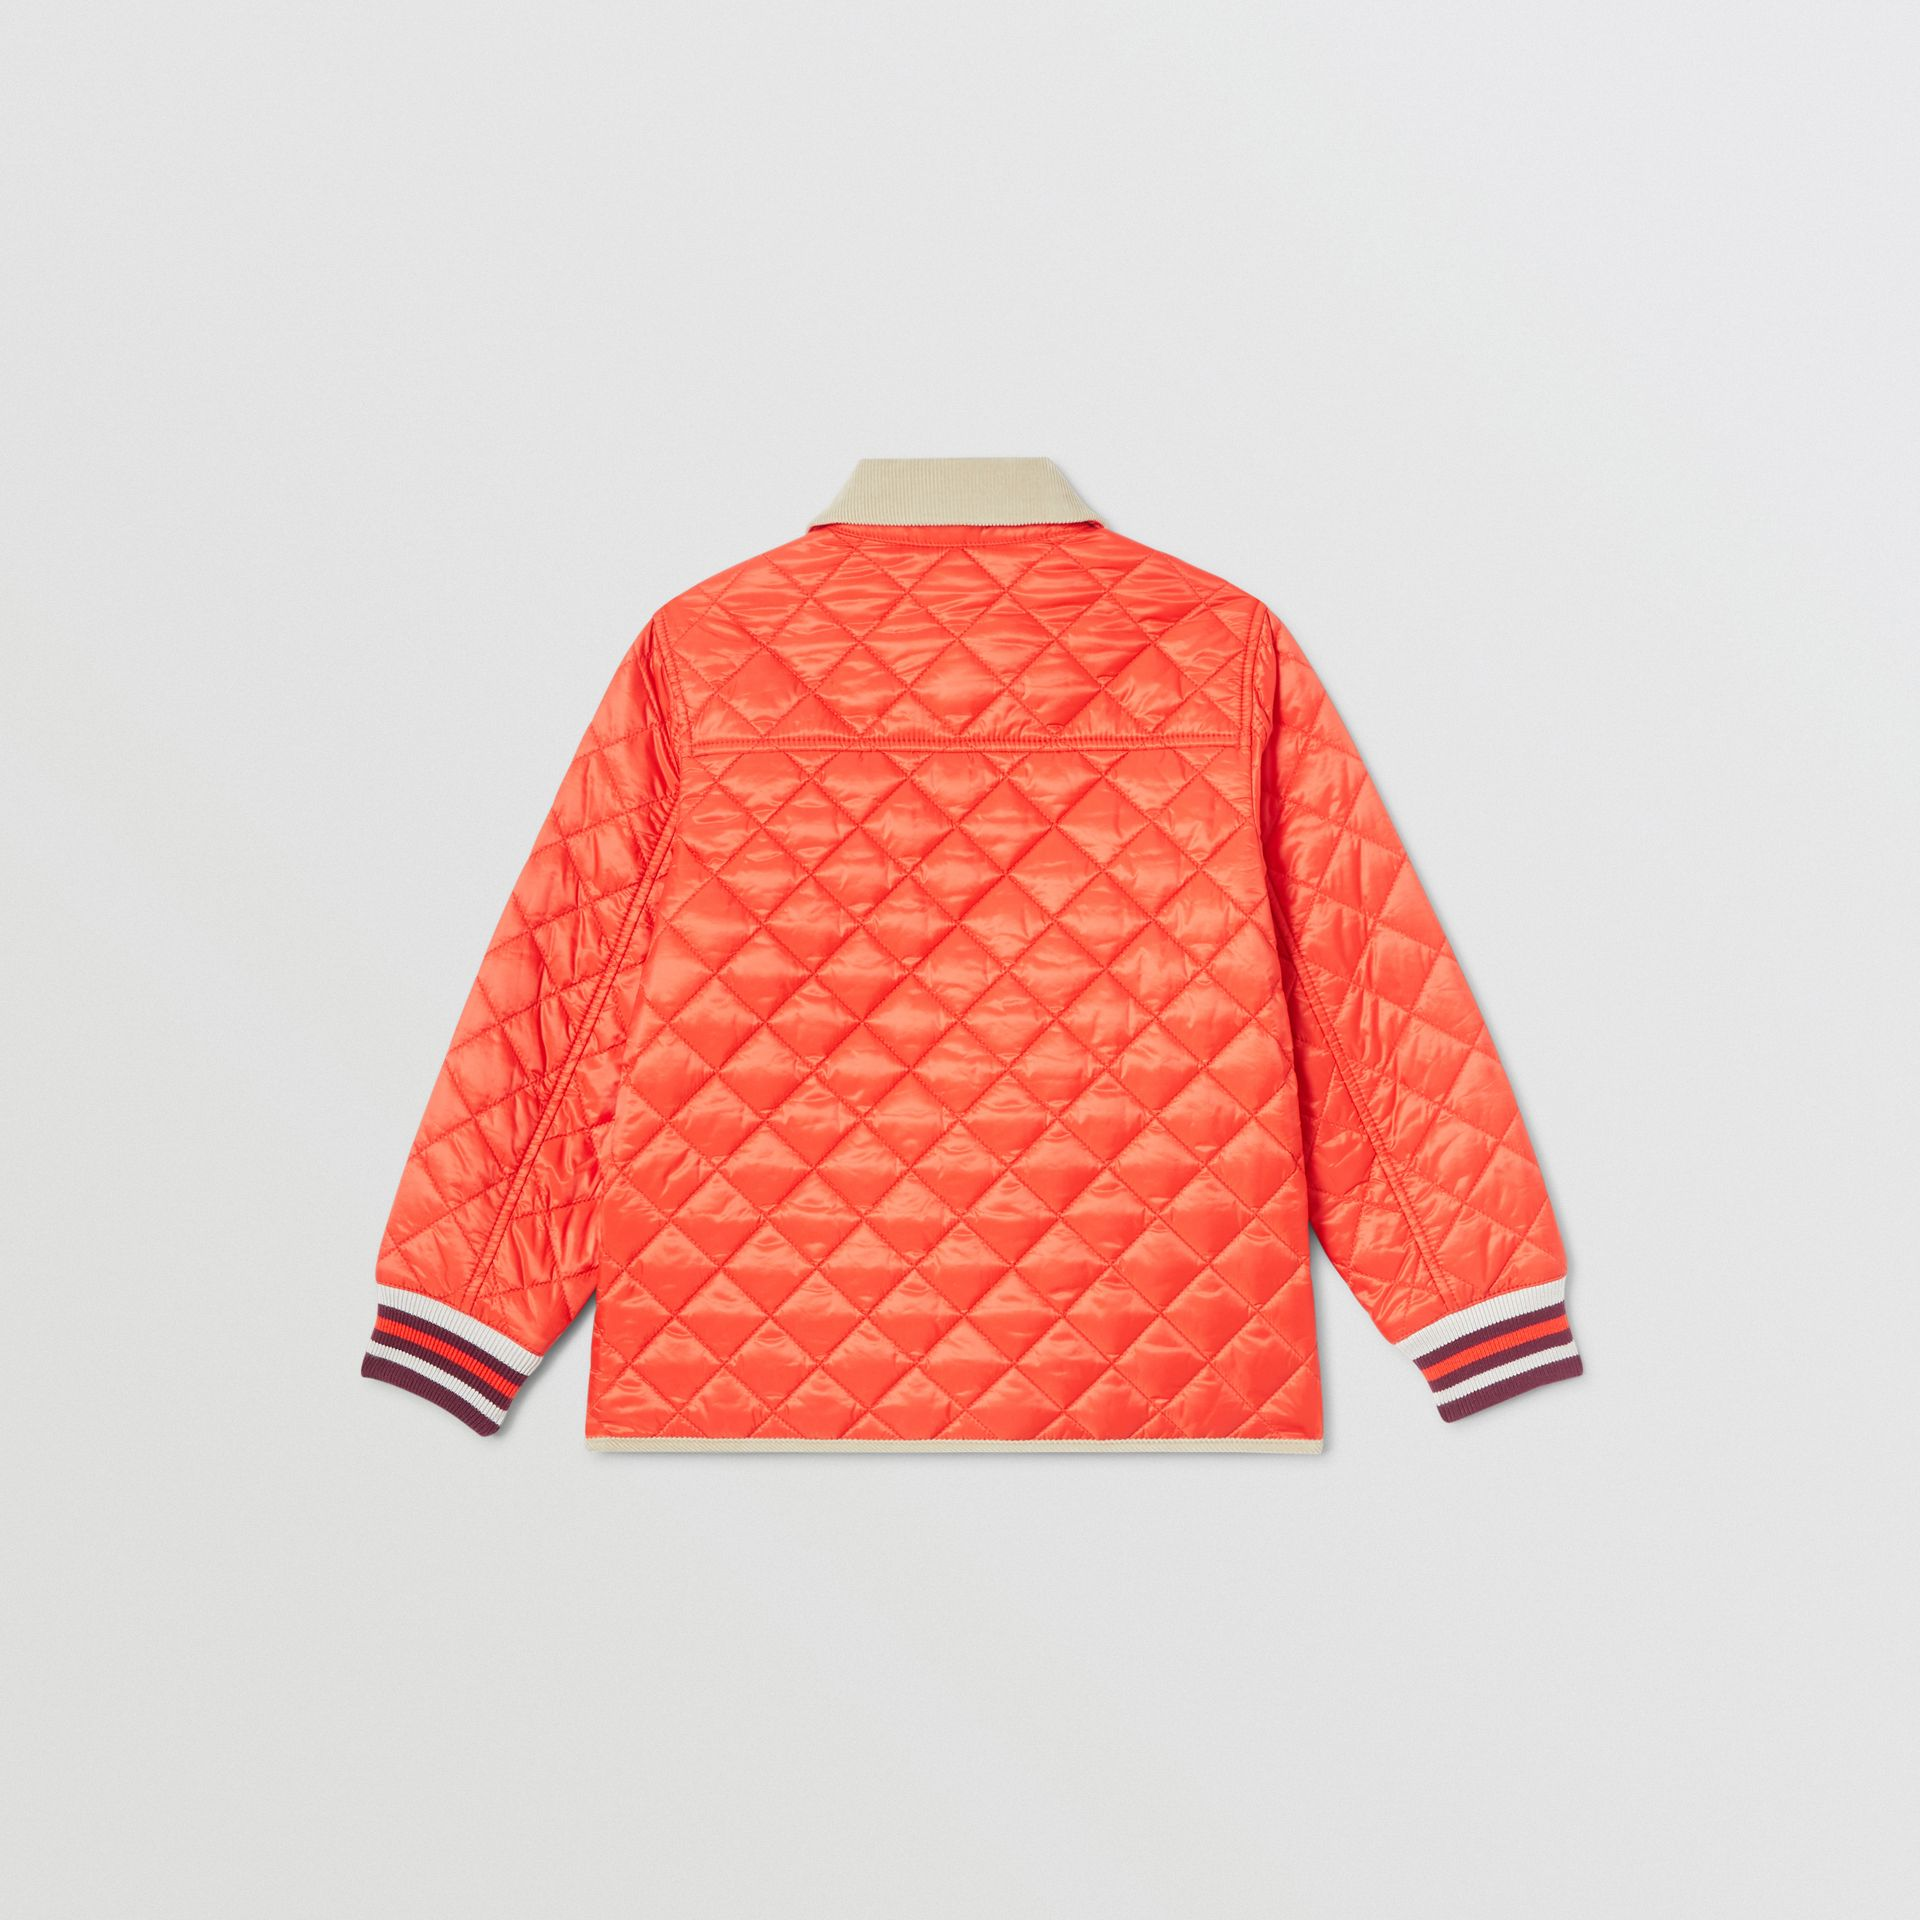 Corduroy Trim Lightweight Diamond Quilted Jacket in Bright Coral Orange | Burberry United States - gallery image 4